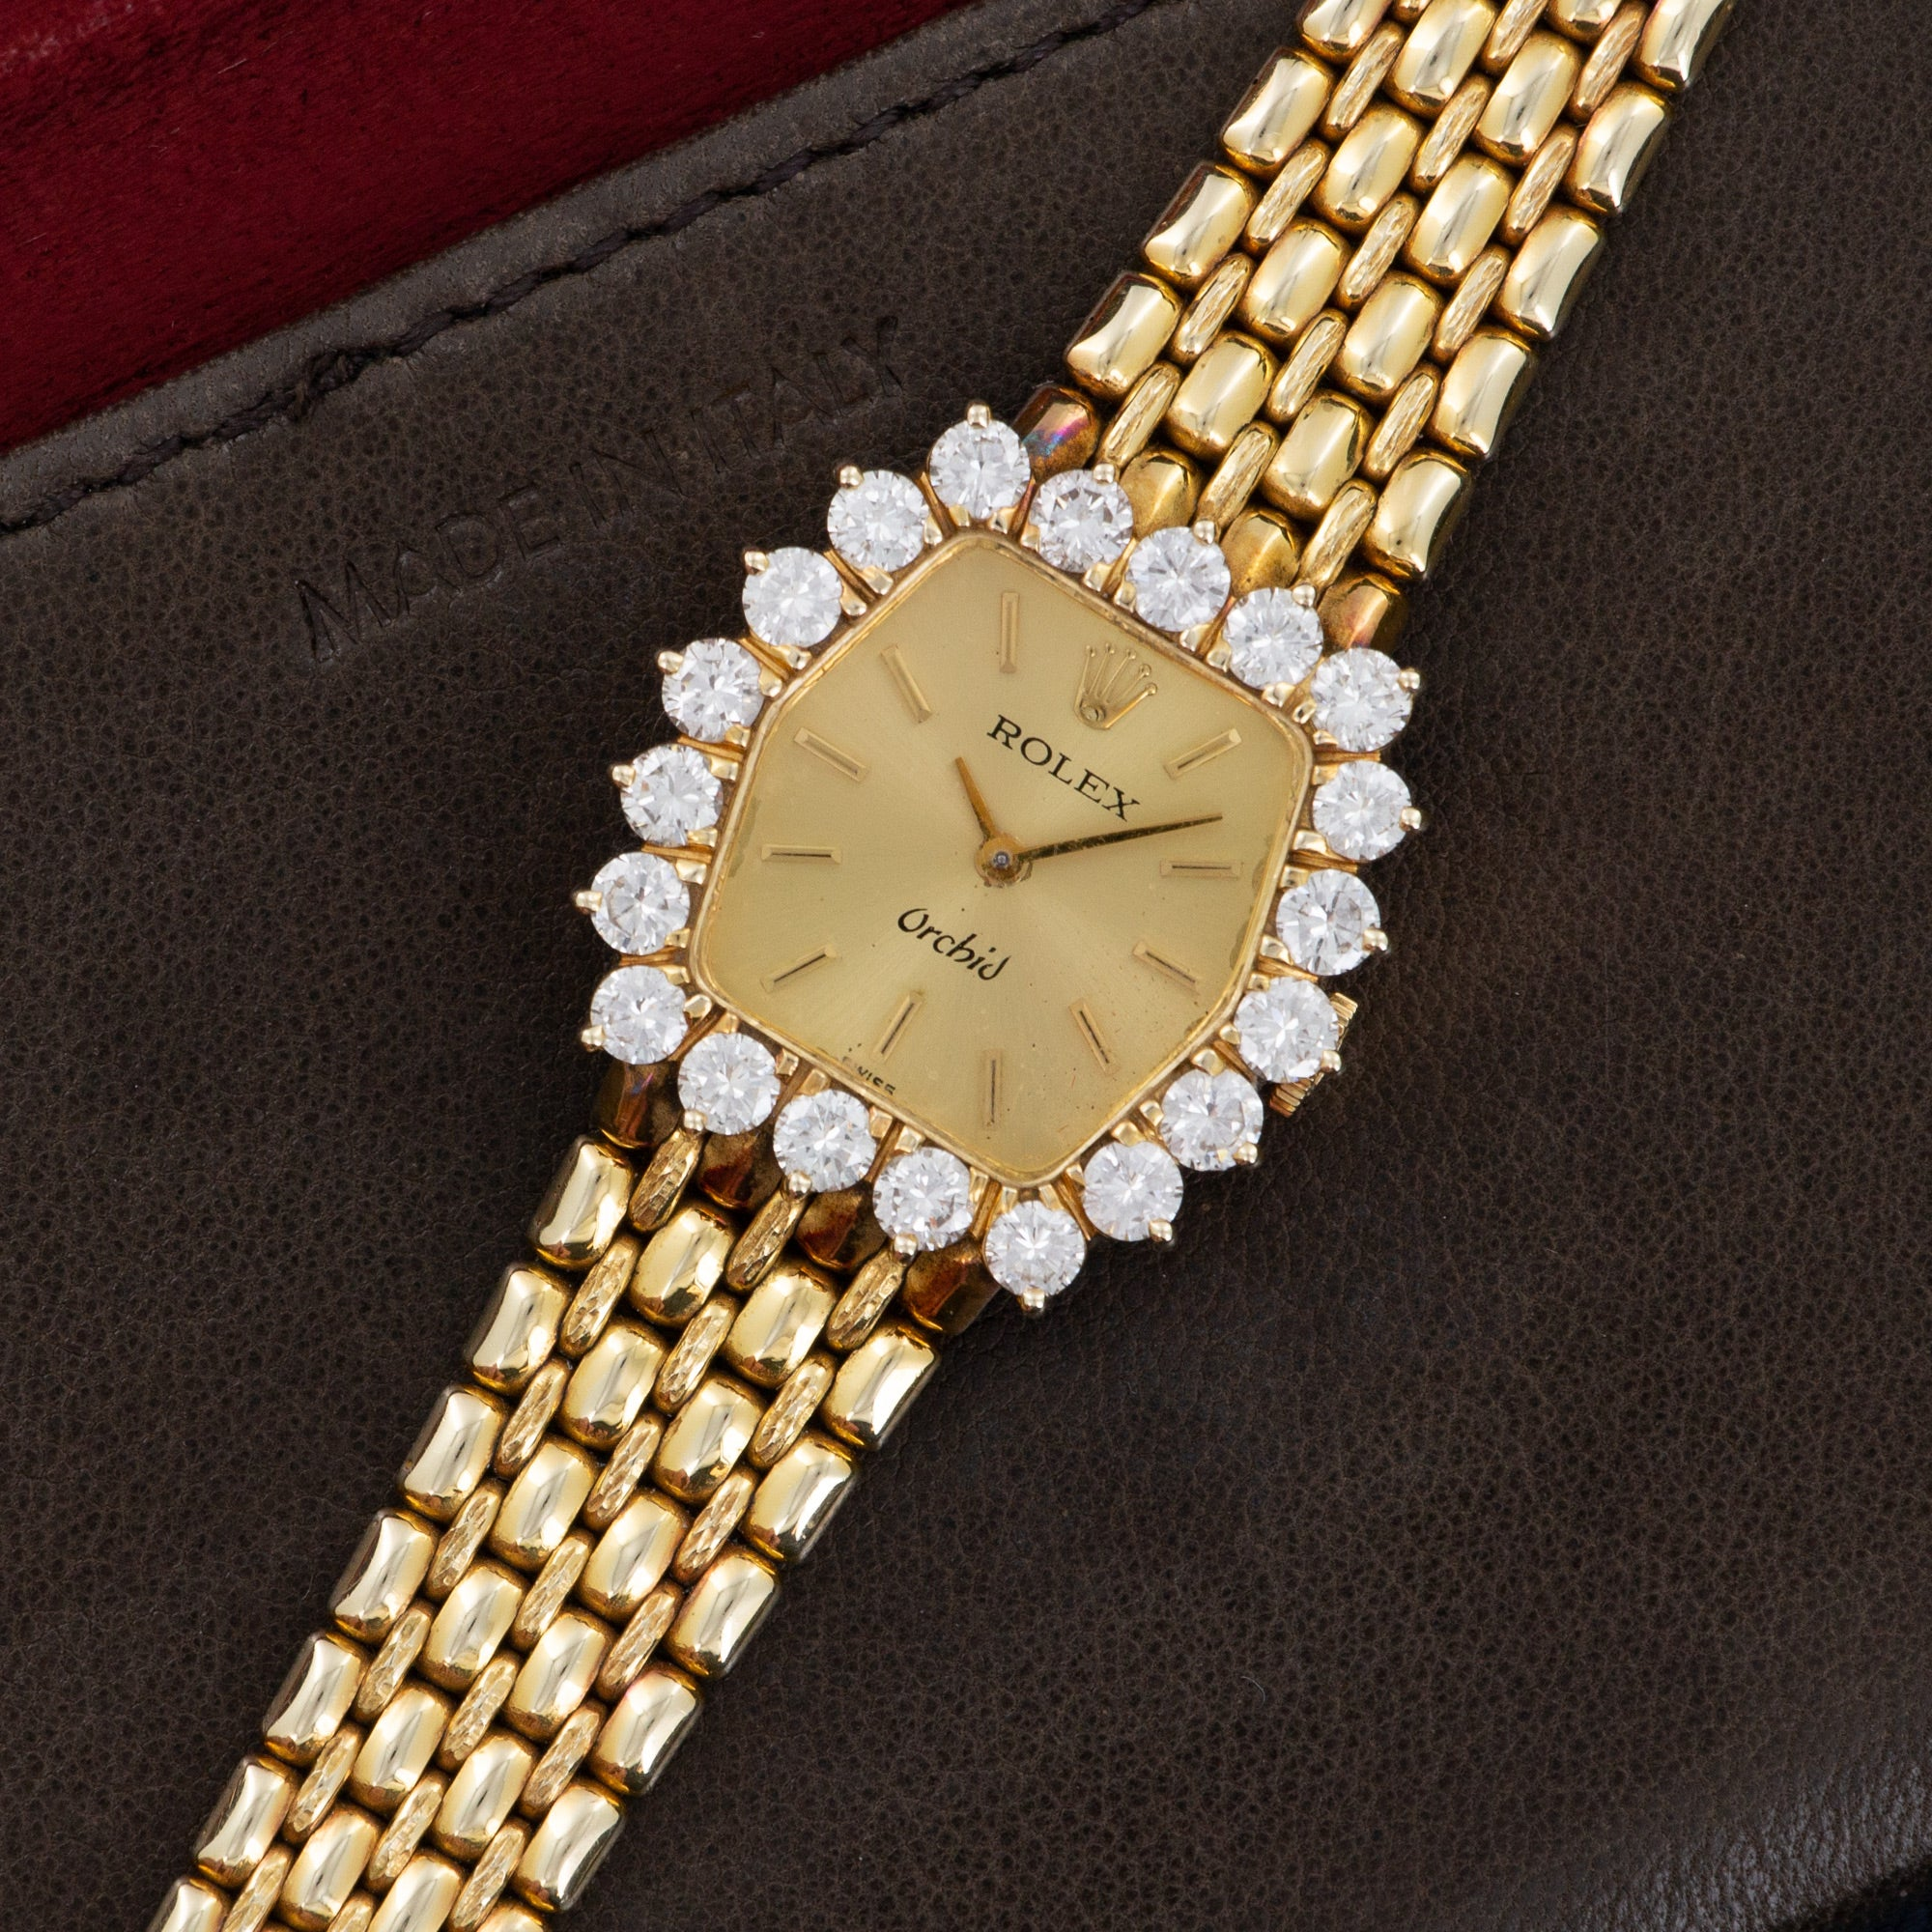 Rolex Orchid N/A 18k YG  Excellent Ladies 18k YG Gold Dial with Stick Markers 25mm Manual 1970s Yellow Gold Bracelet Leather Travel Case